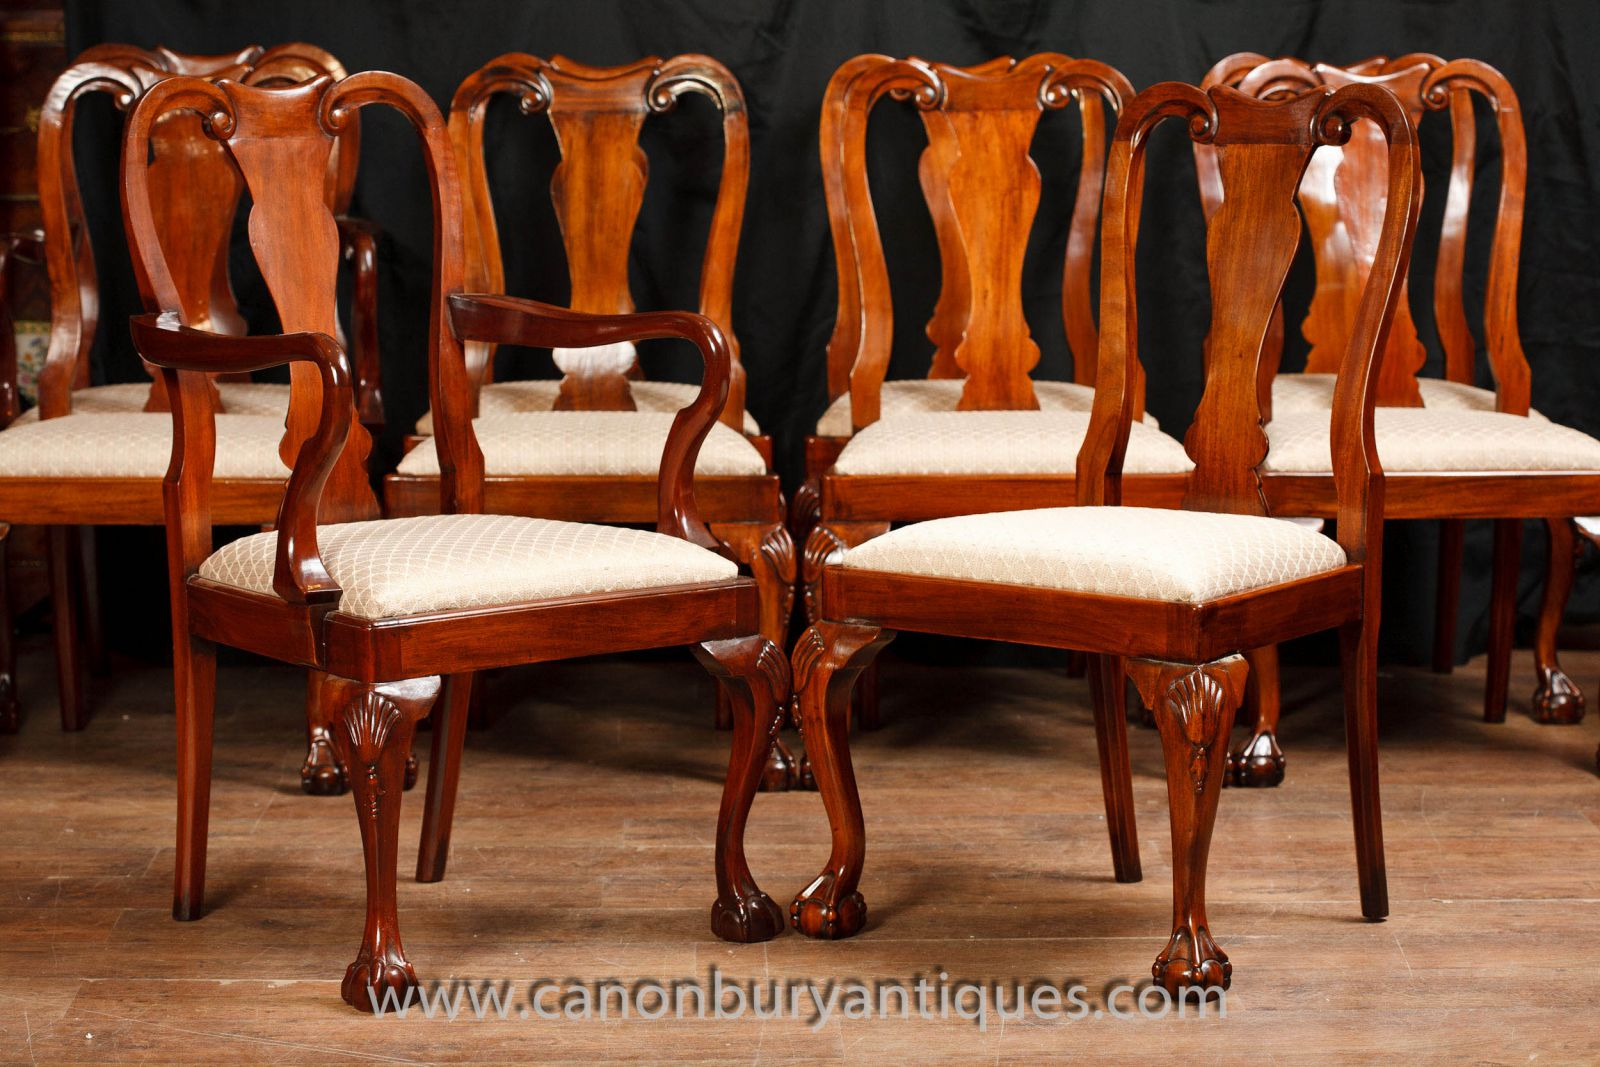 Queen Anne dining chairs in walnut